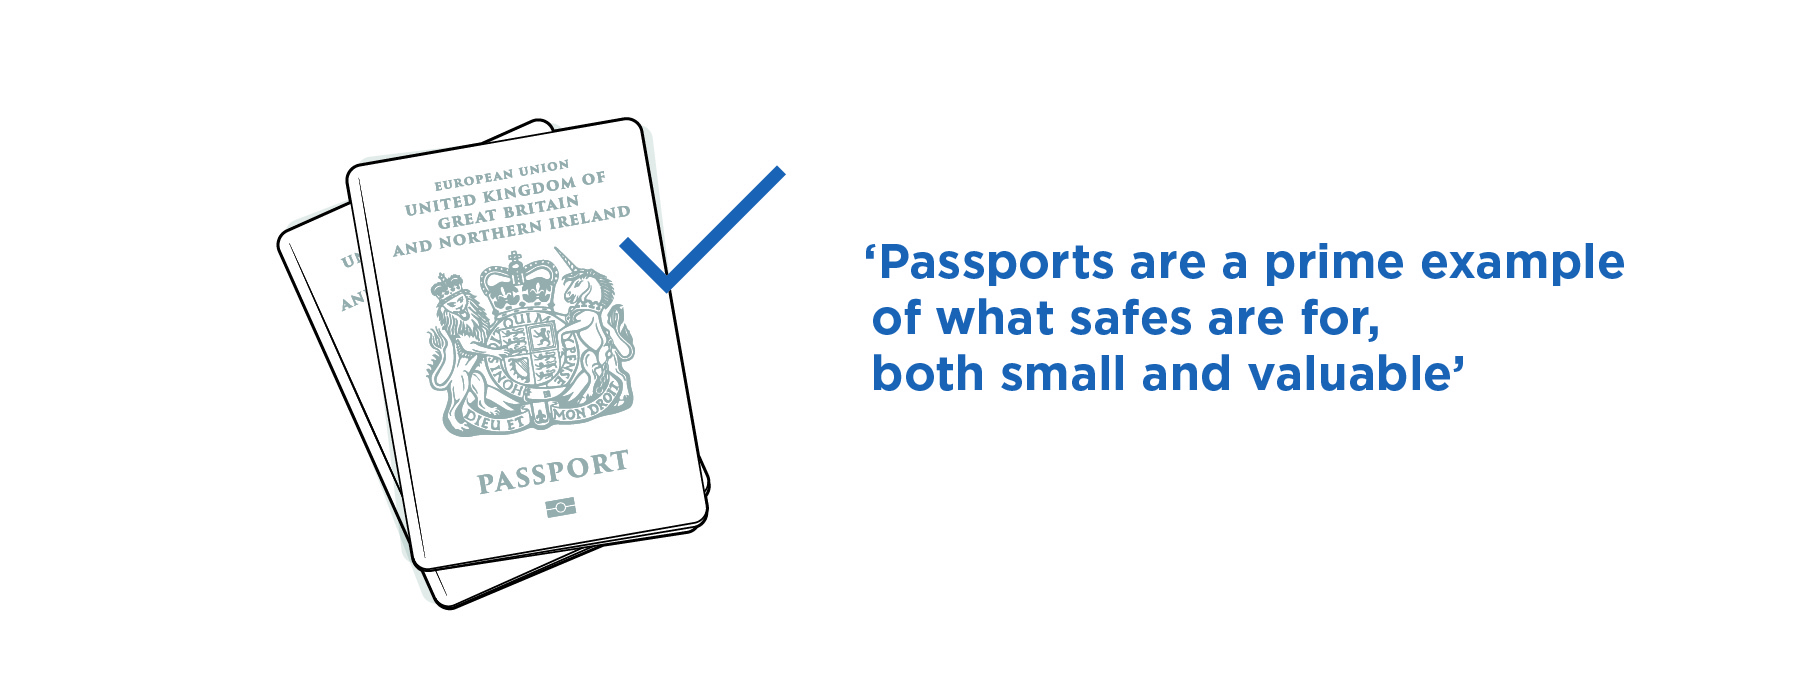 Passports are excellent places for home safes